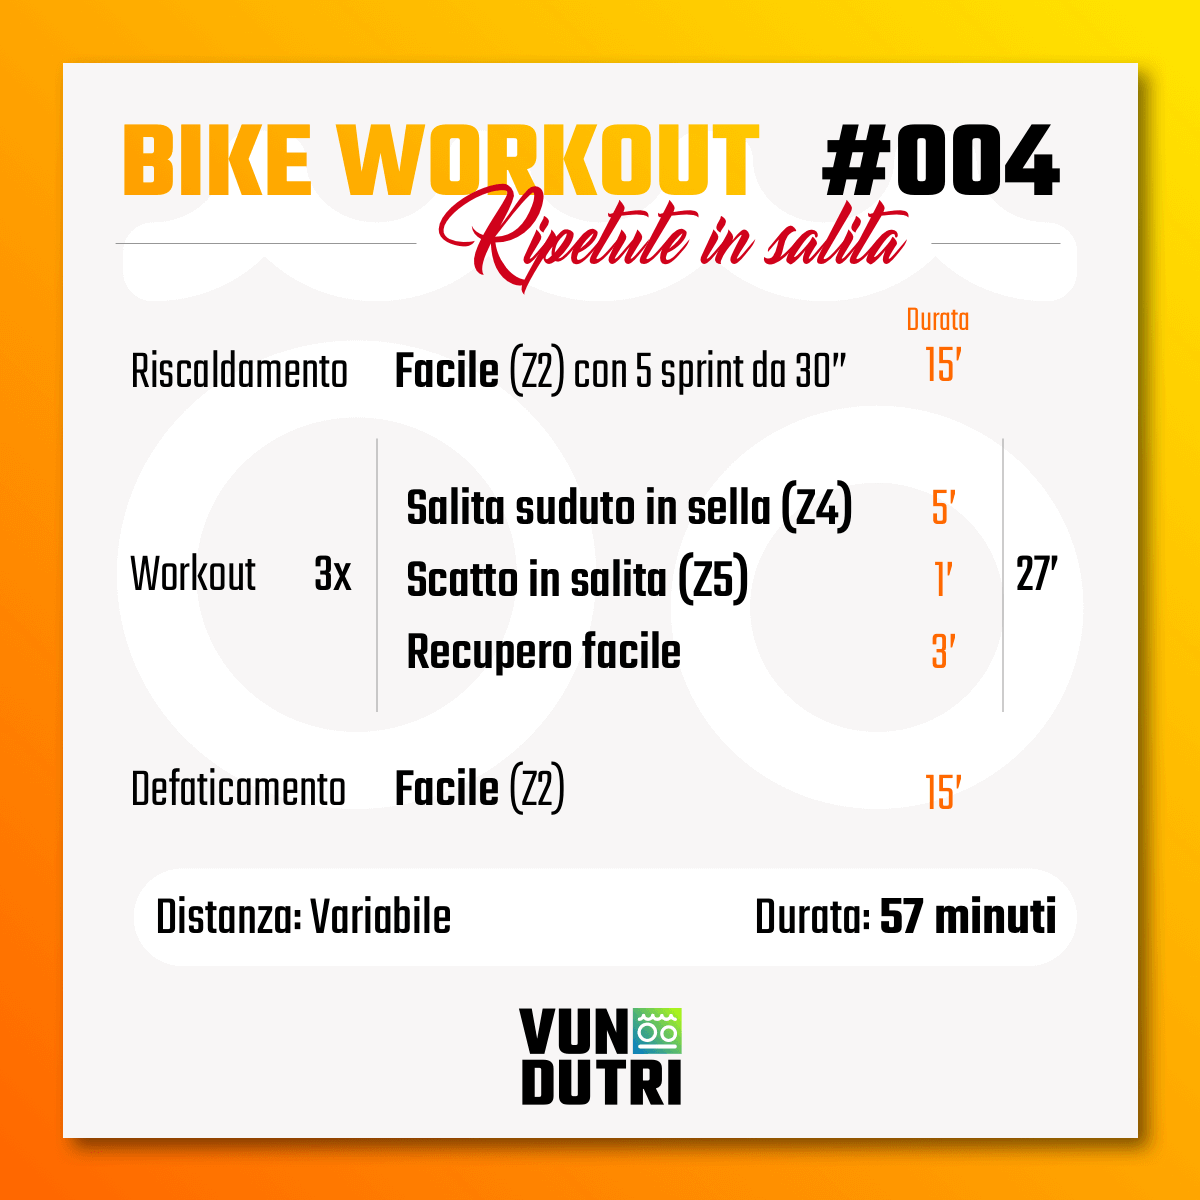 Bike Workout 004 - Ripetute in salita